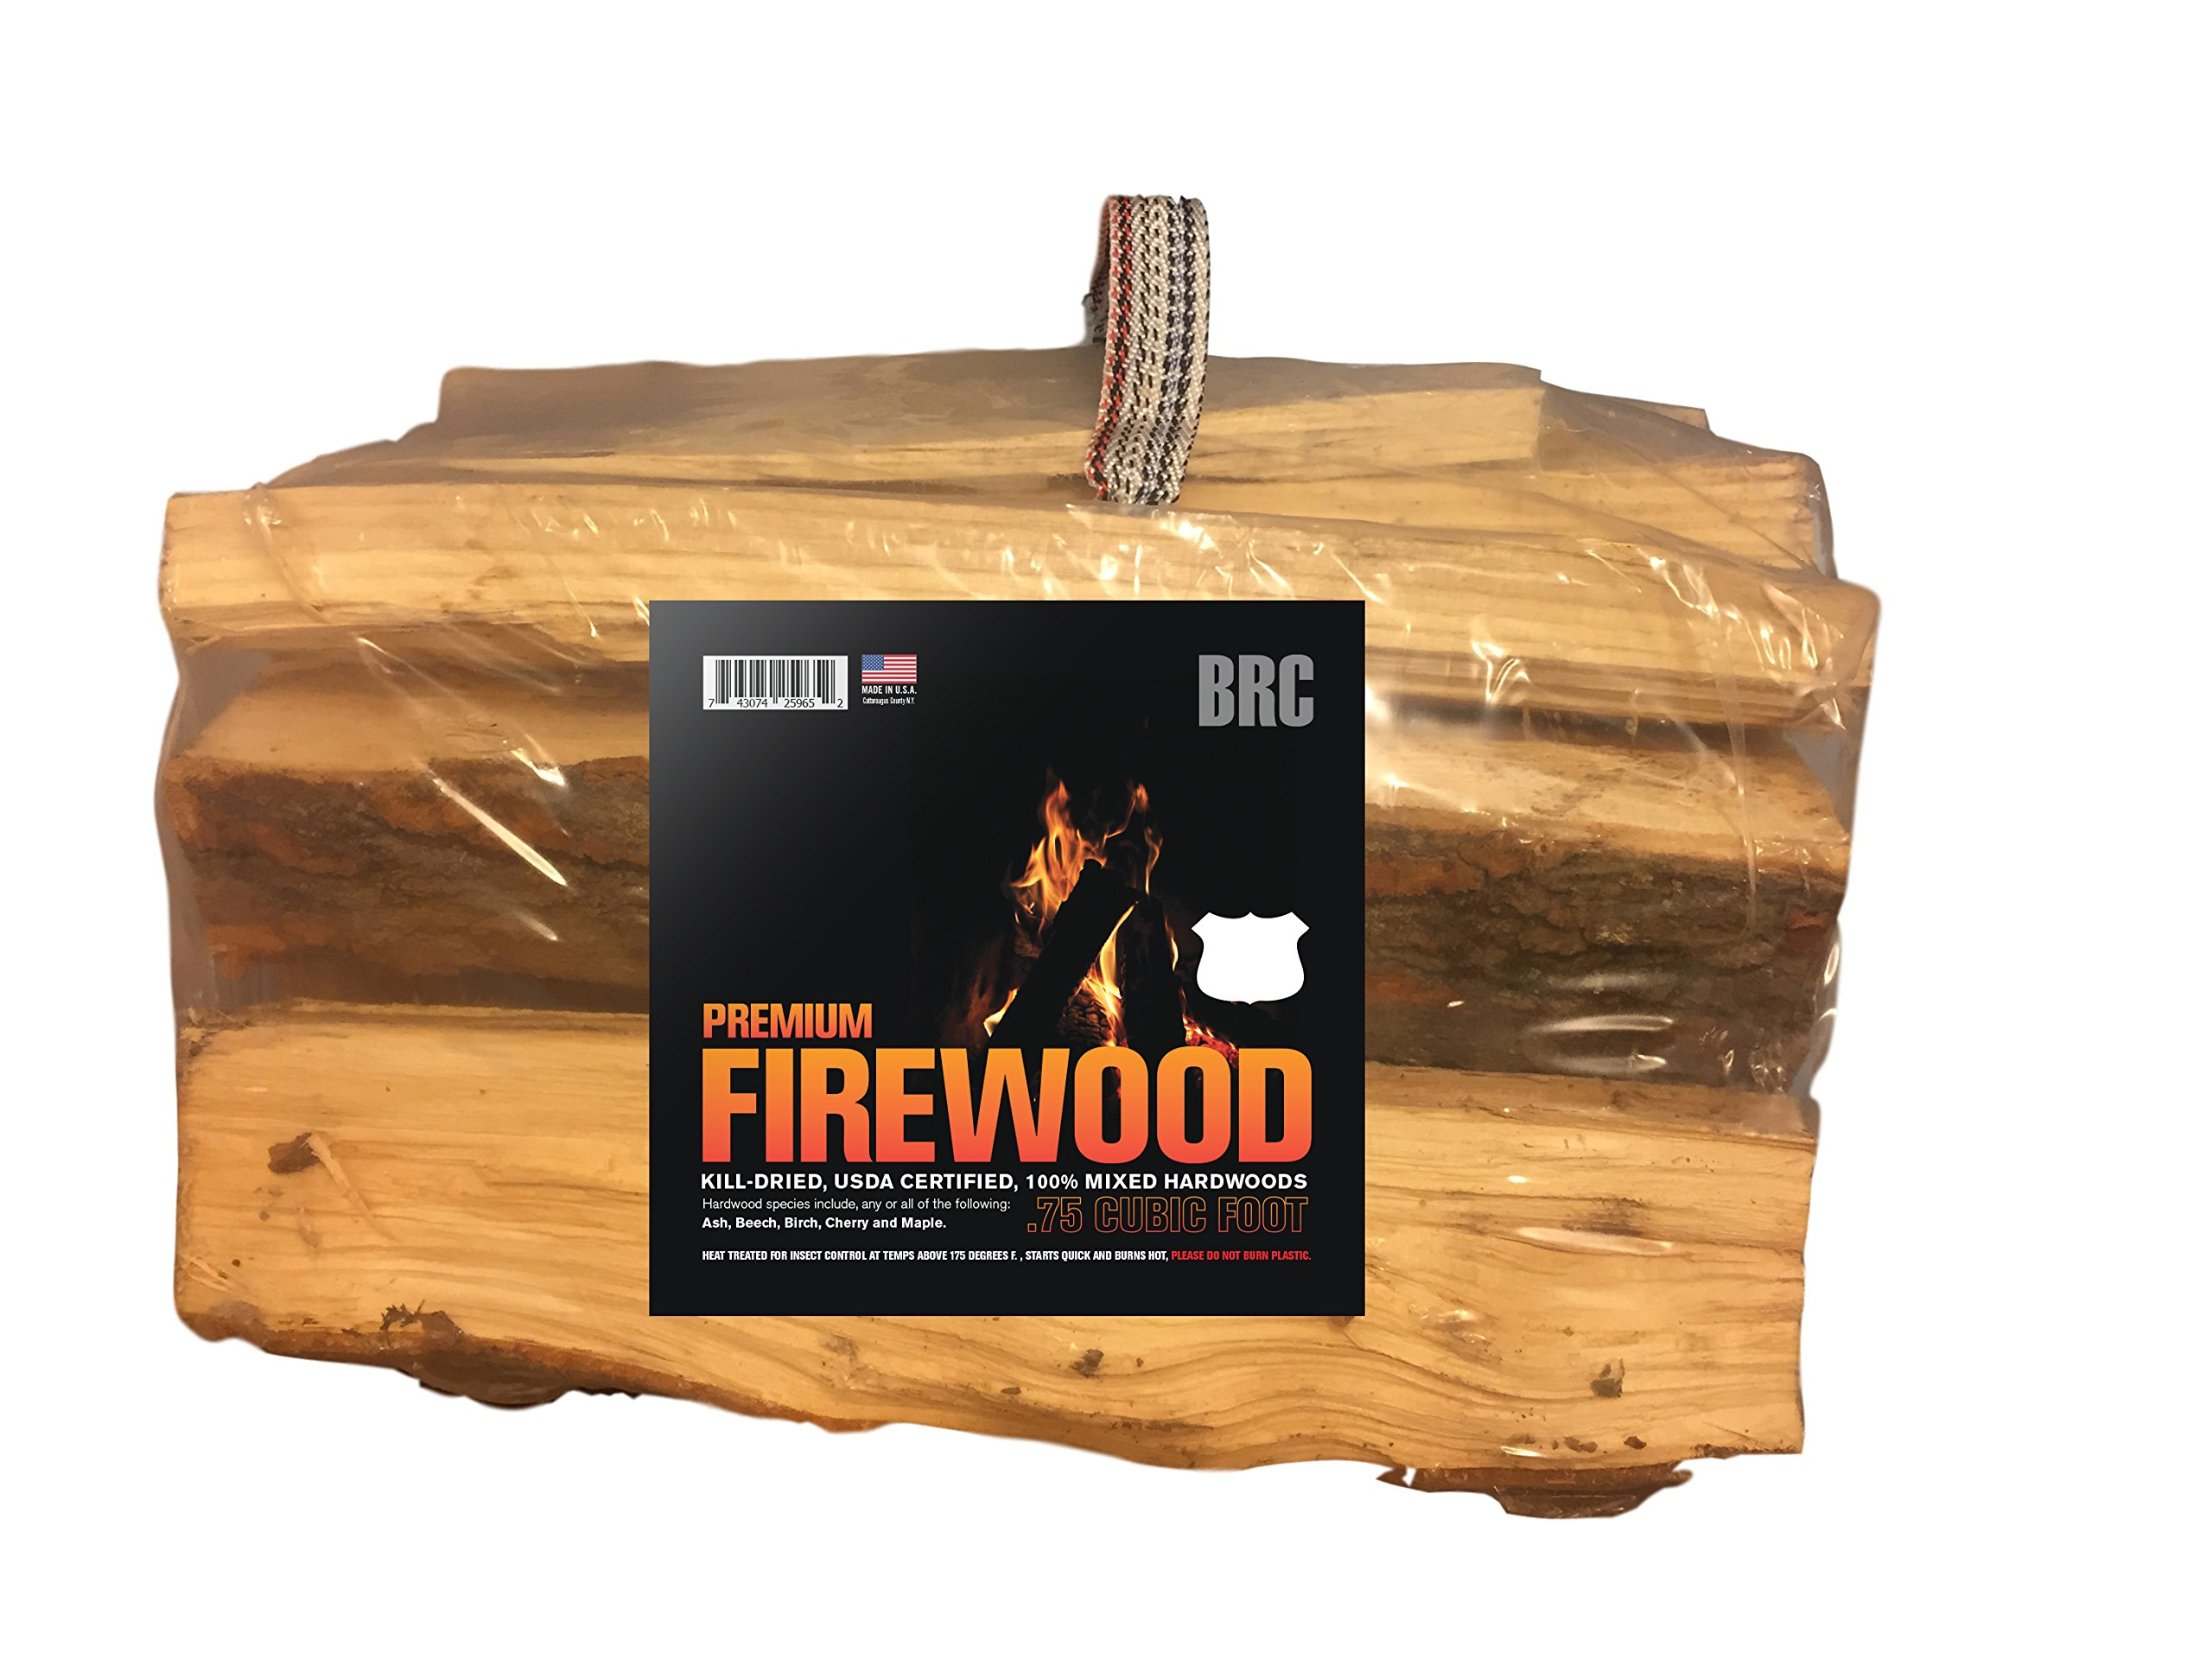 BRC Premium Firewood, Made in the USA! (Wood Bundle) by BRC (Image #1)